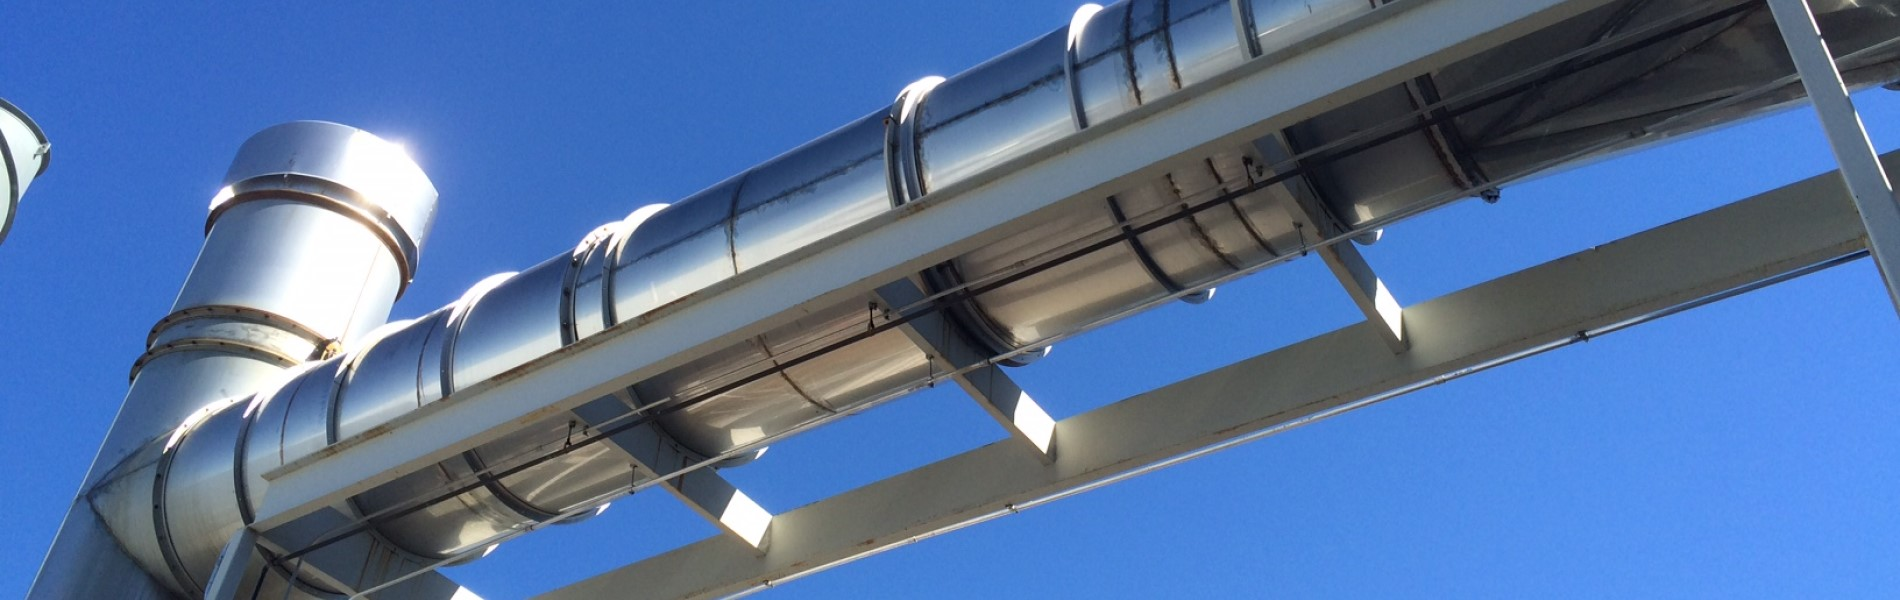 Steel ductwork against blue sky